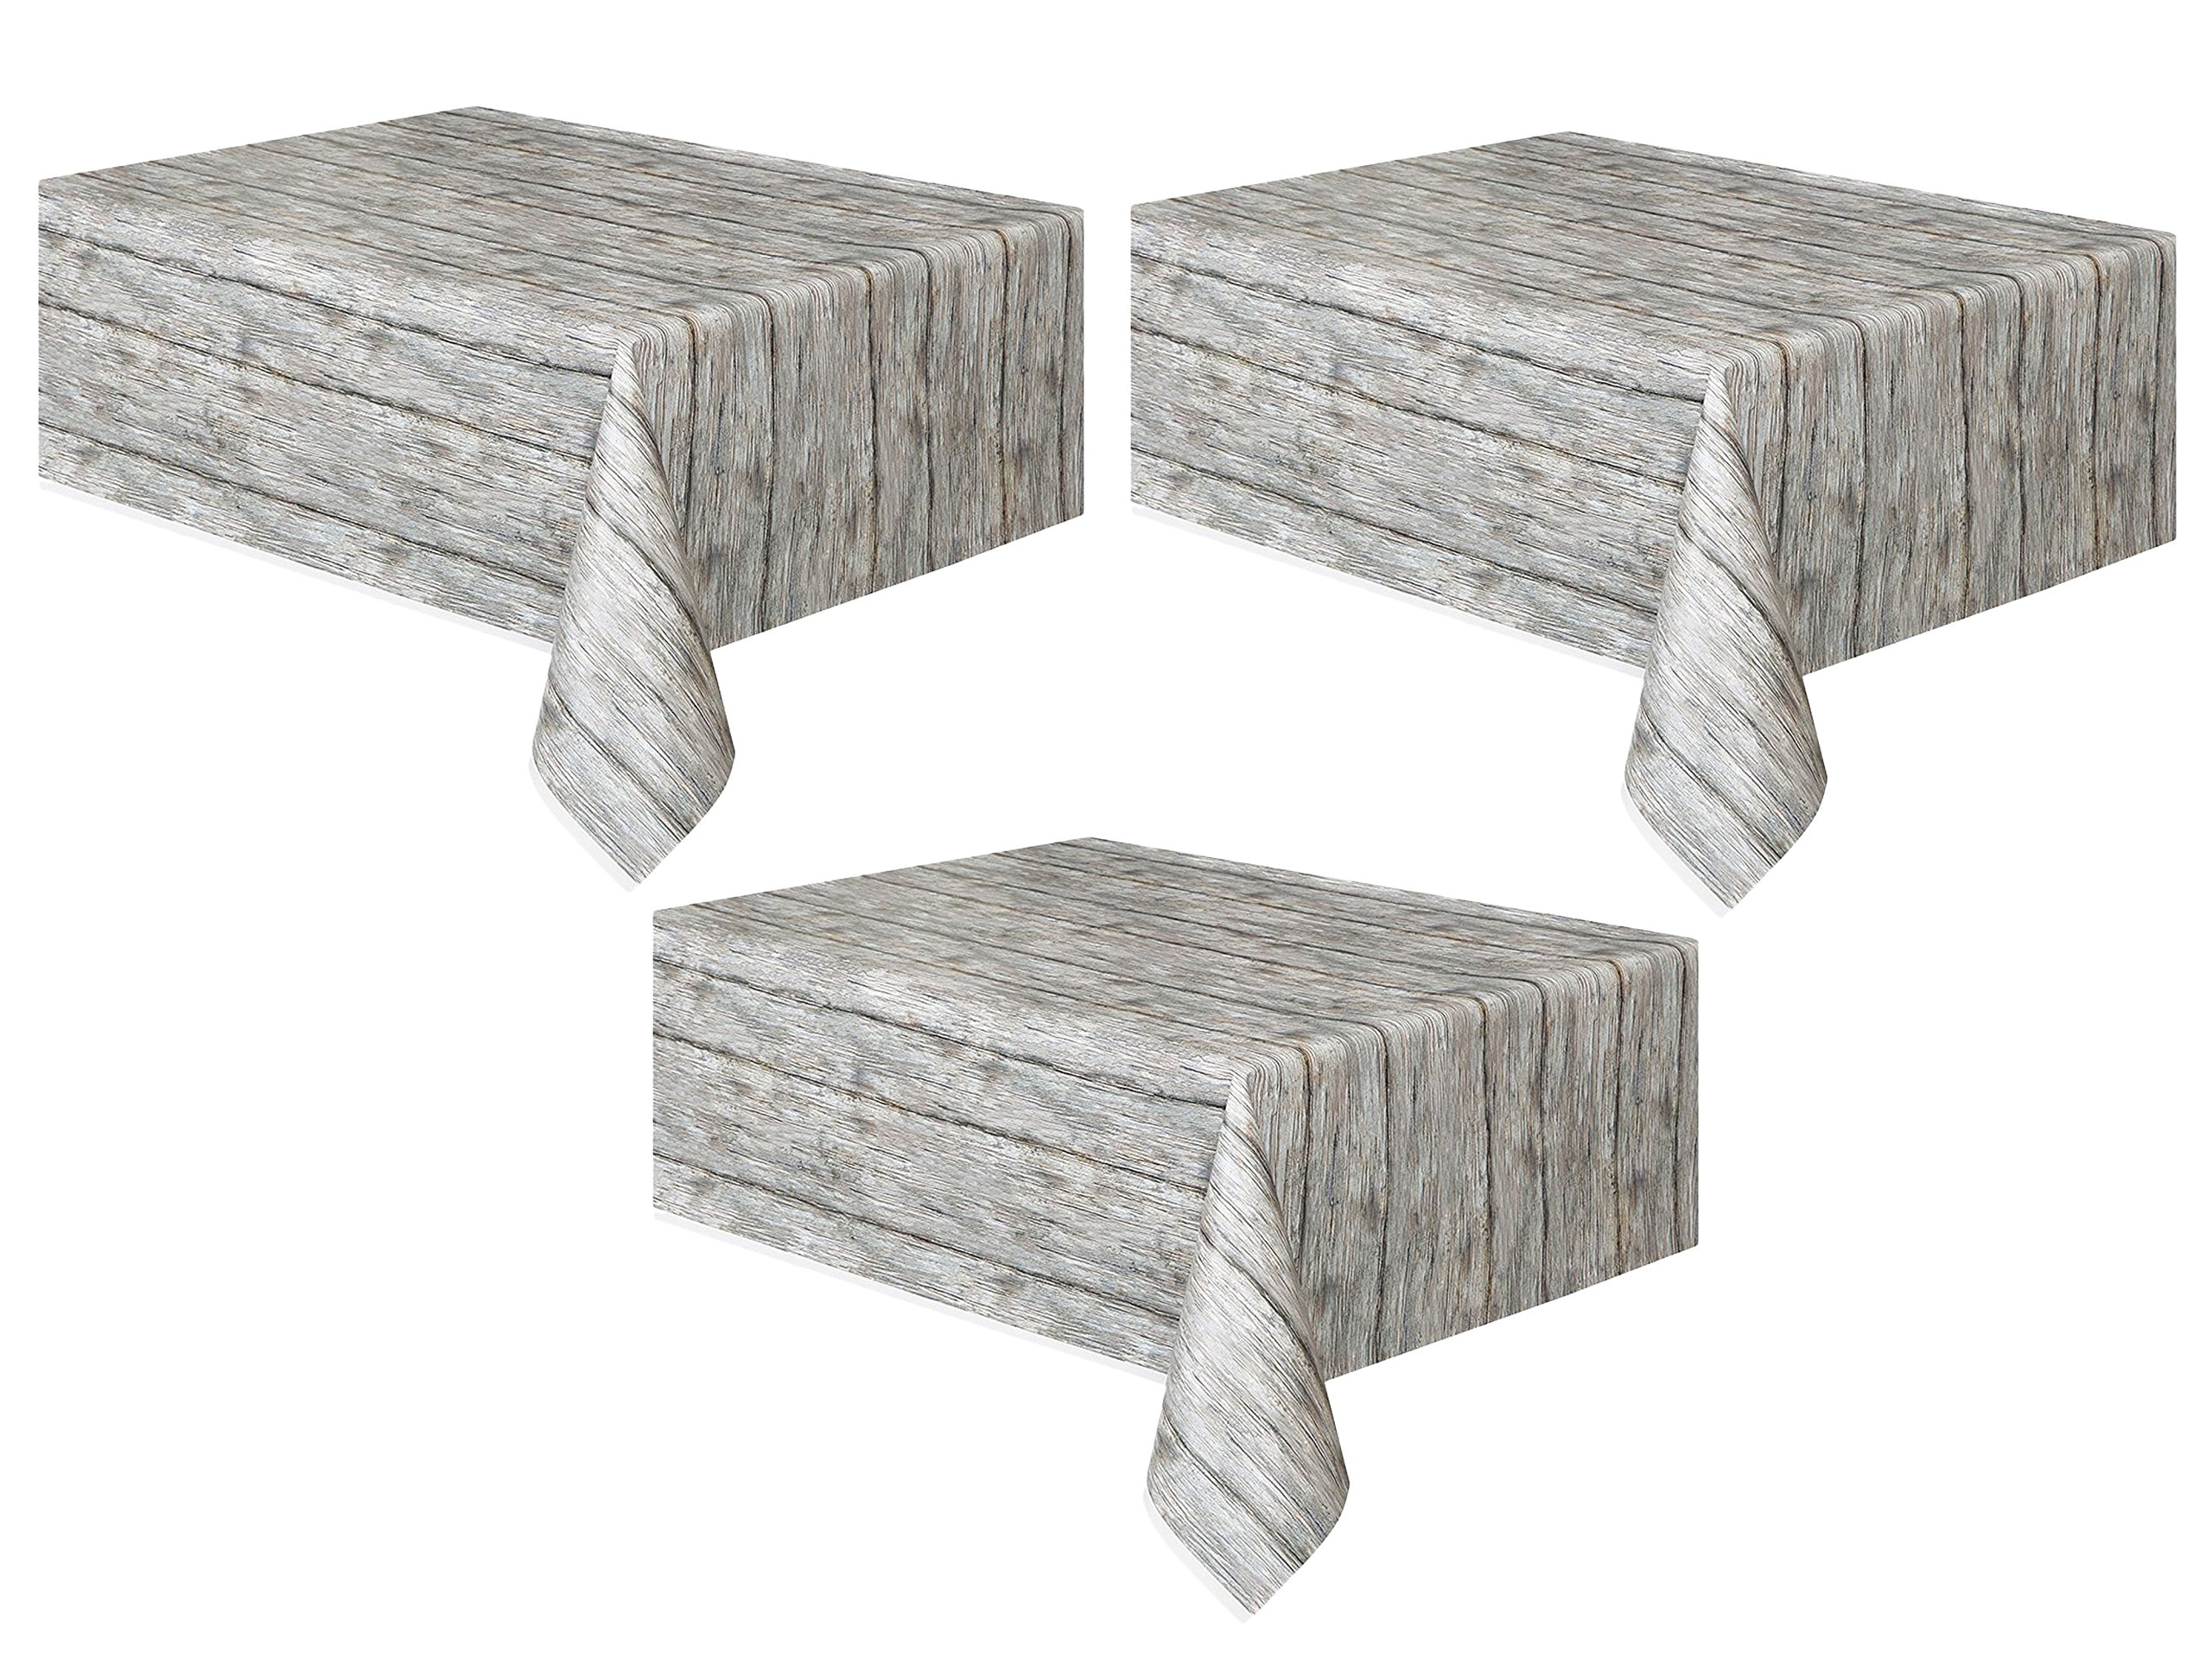 Set of 3 Unique Industries Rustic Wood Plastic Tablecloth, 108'' x 54'' bundled by Maven Gifts